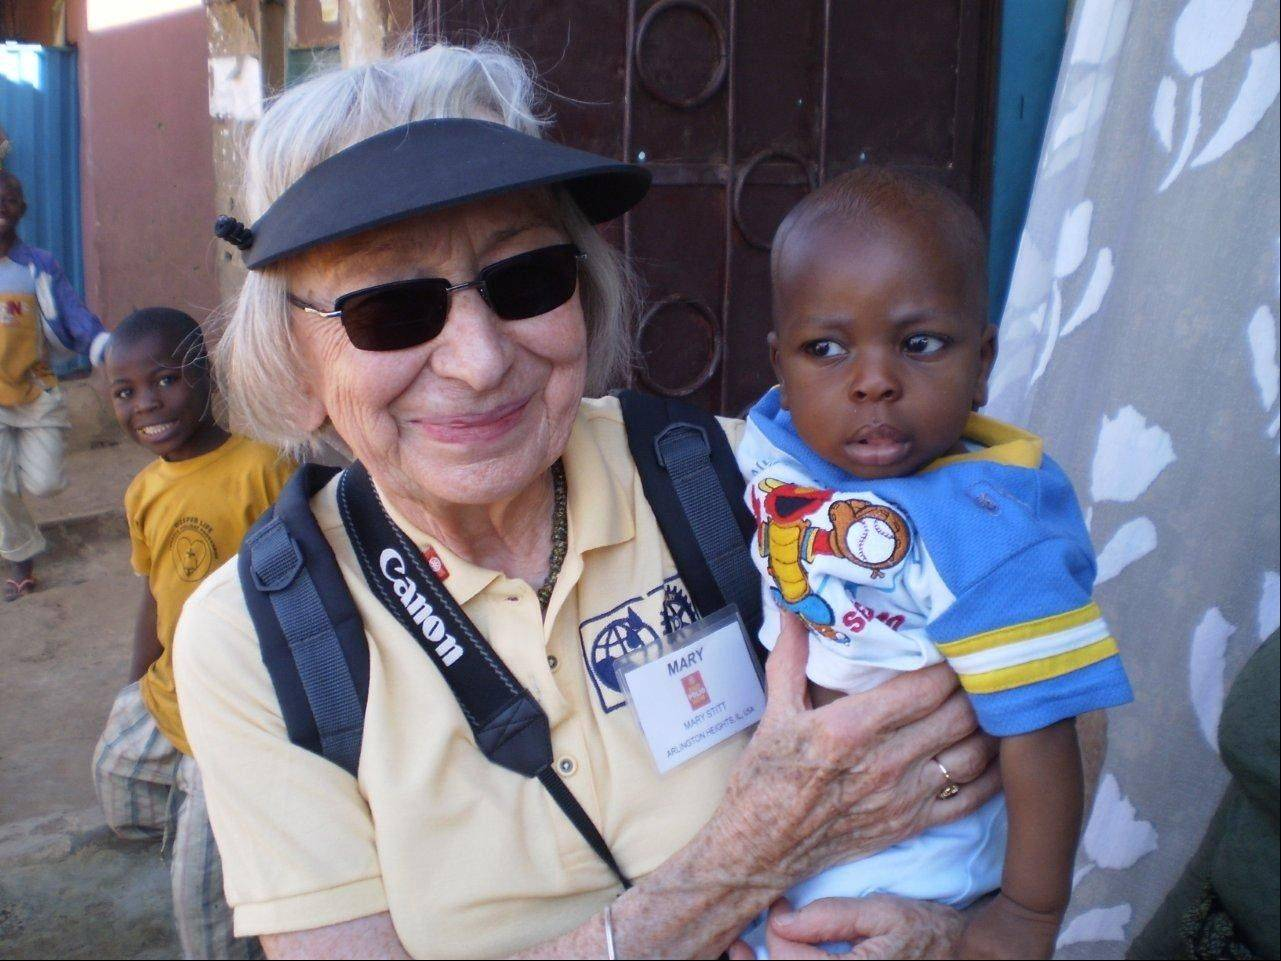 Mary Stitt holds a baby during her travels abroad to vaccinate children against polio.